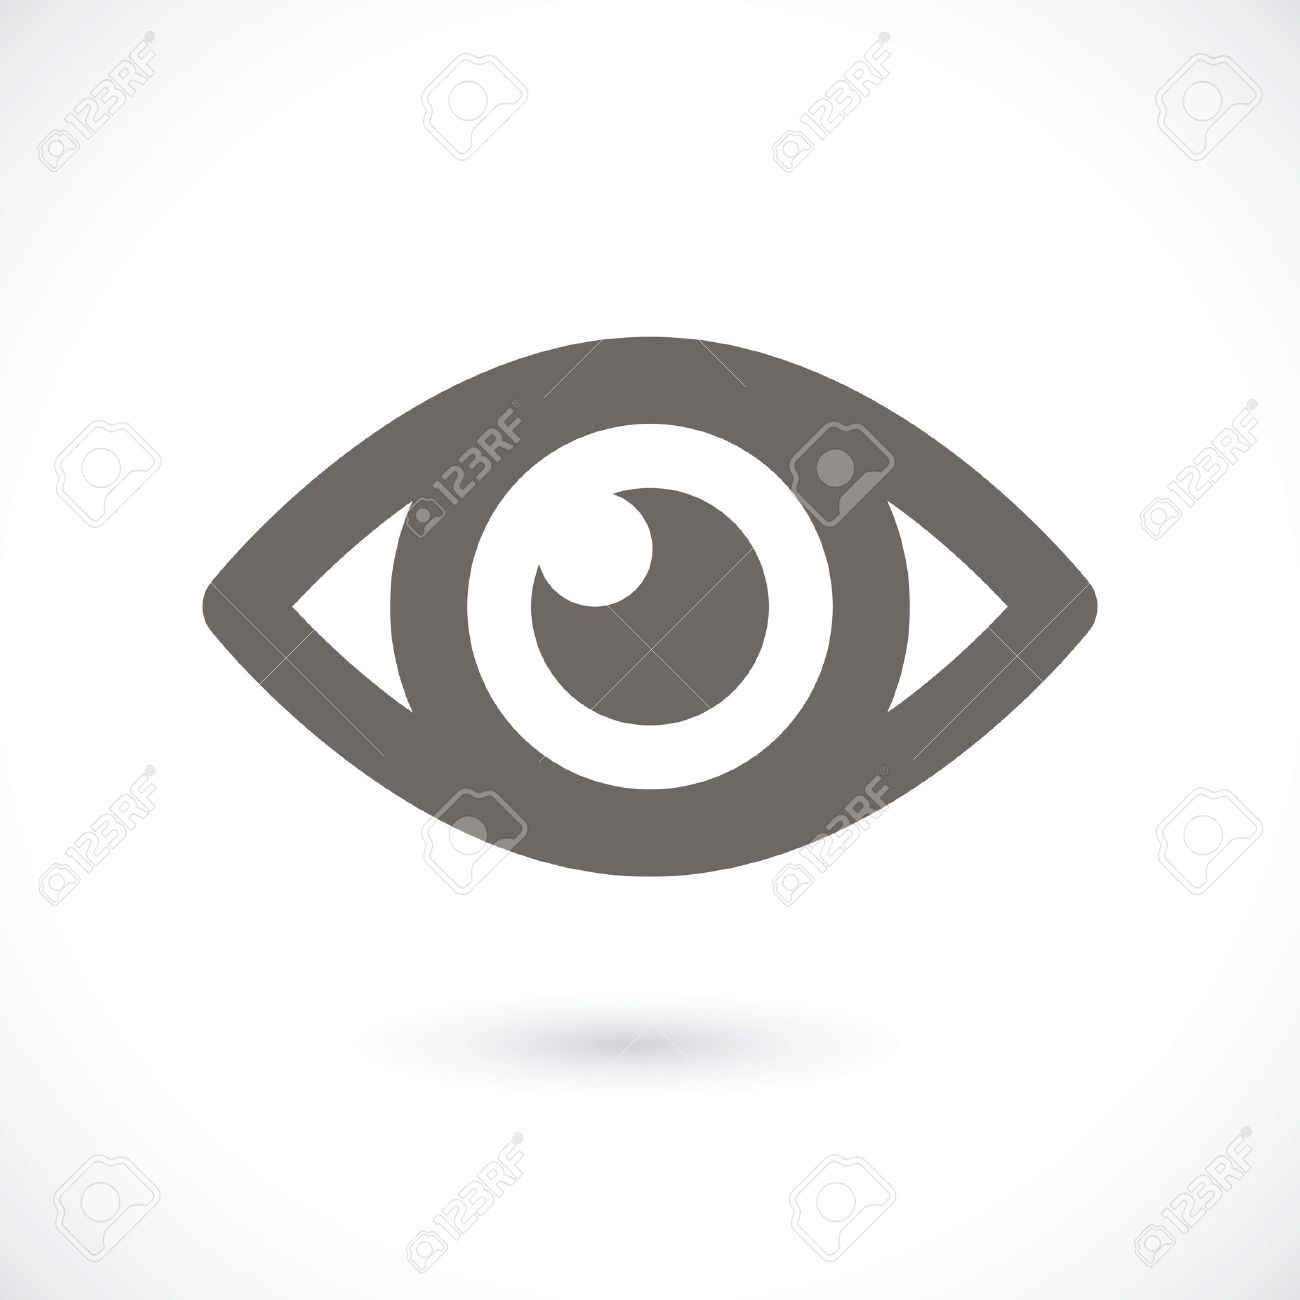 Eye icon Stock Vector - 22593239